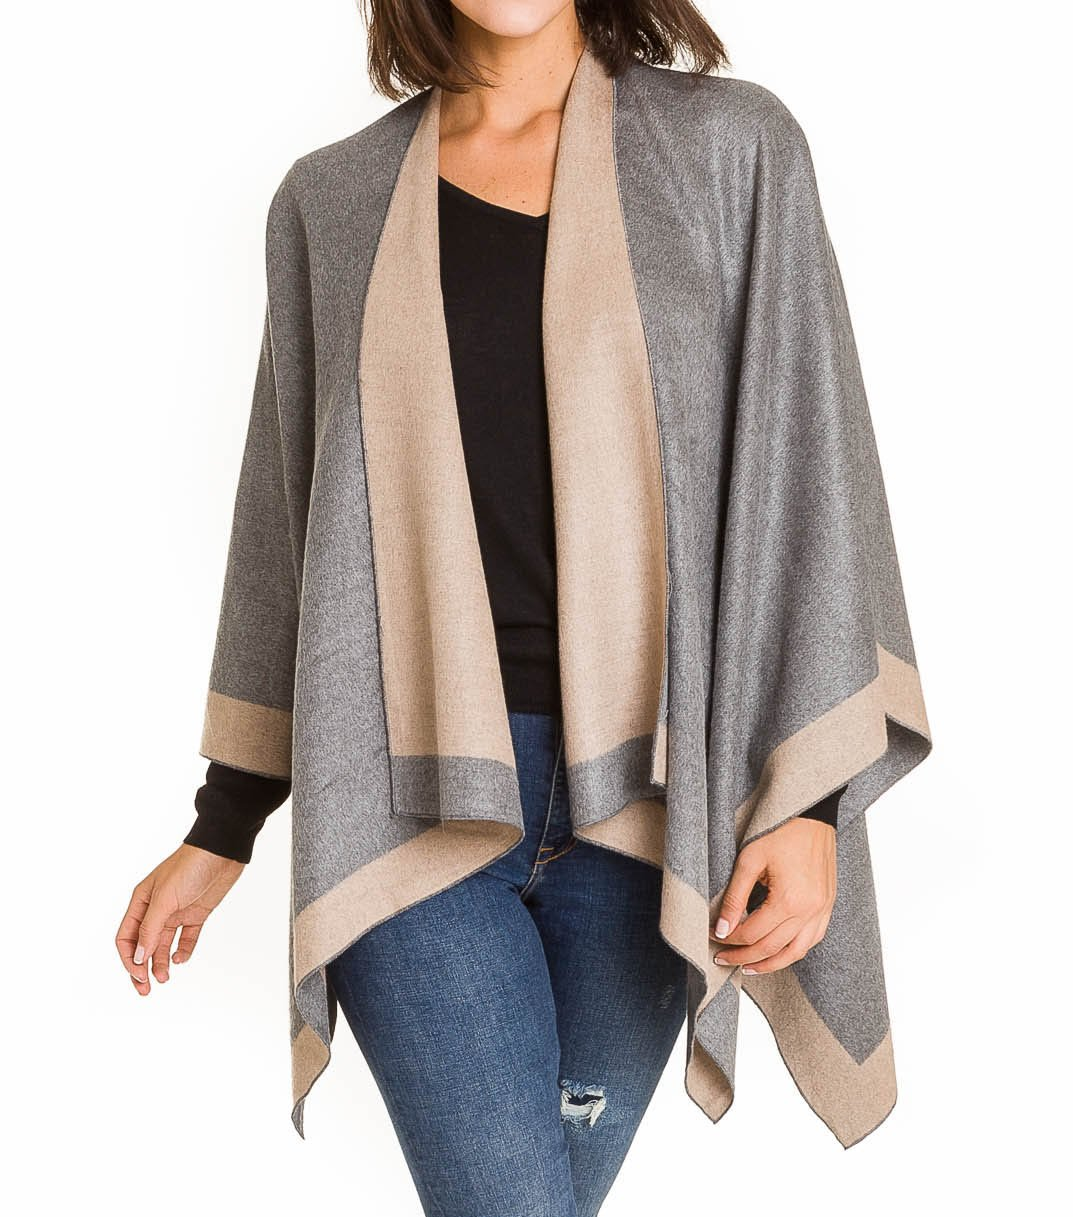 Cardigan Poncho Cape: Women Elegant Gray Beige Reversible Cardigan Shawl Wrap Sweater Coat for Winter (Light Gray Beige) by MELIFLUOS DESIGNED IN SPAIN (Image #2)